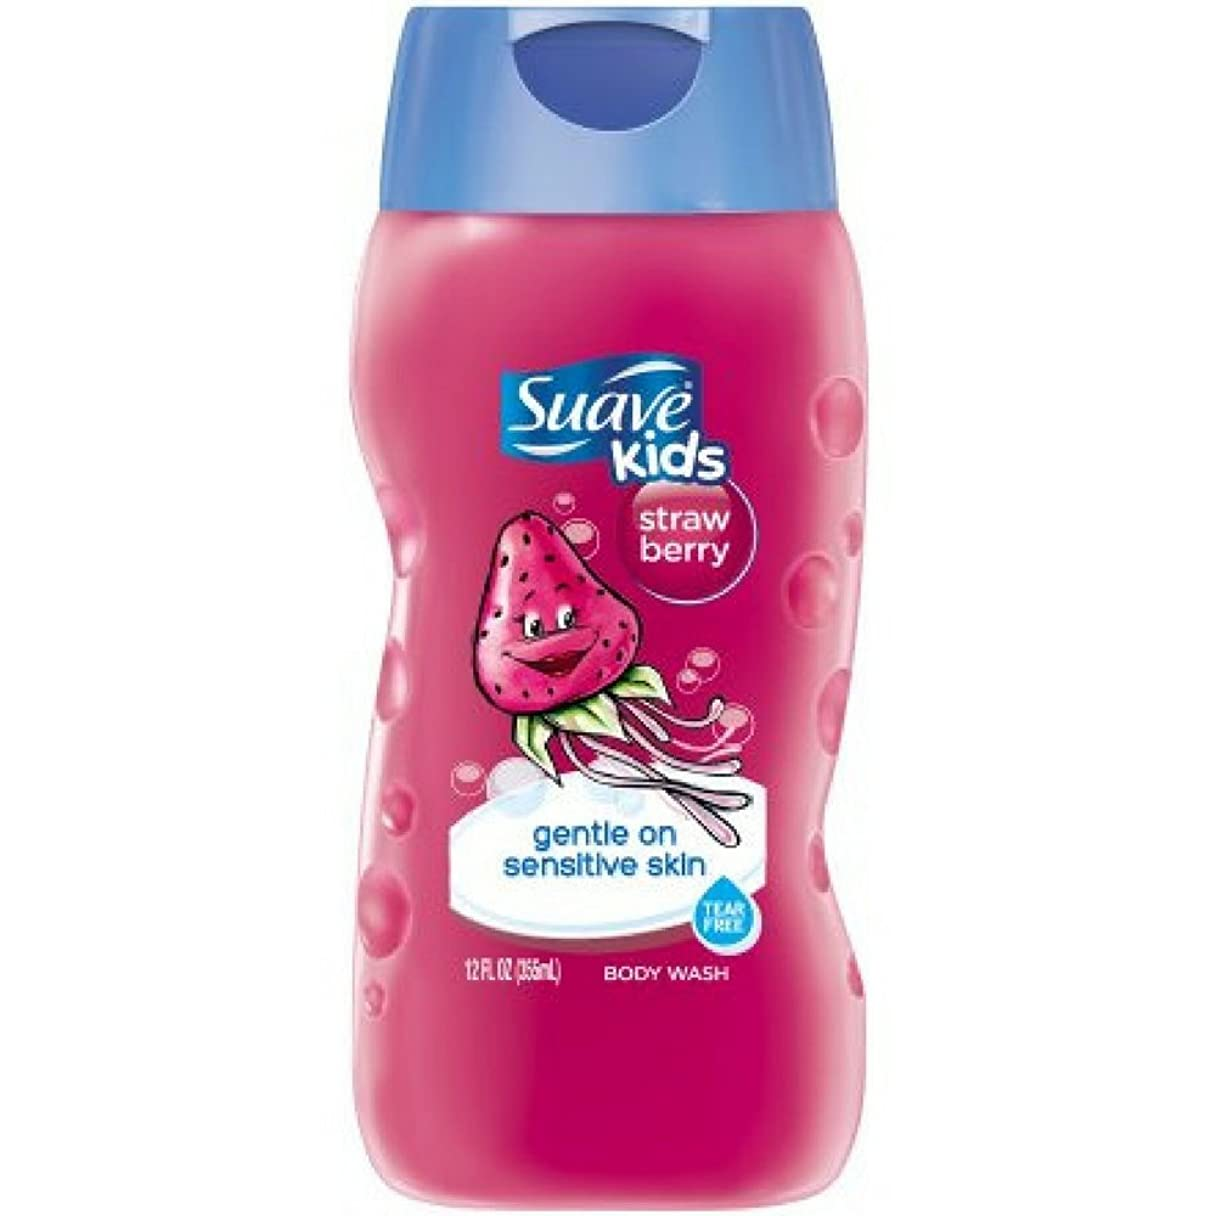 分泌する化粧険しいSuave Kids Kids Body Wash - Strawberry - 12 oz - 2 pk by Suave [並行輸入品]